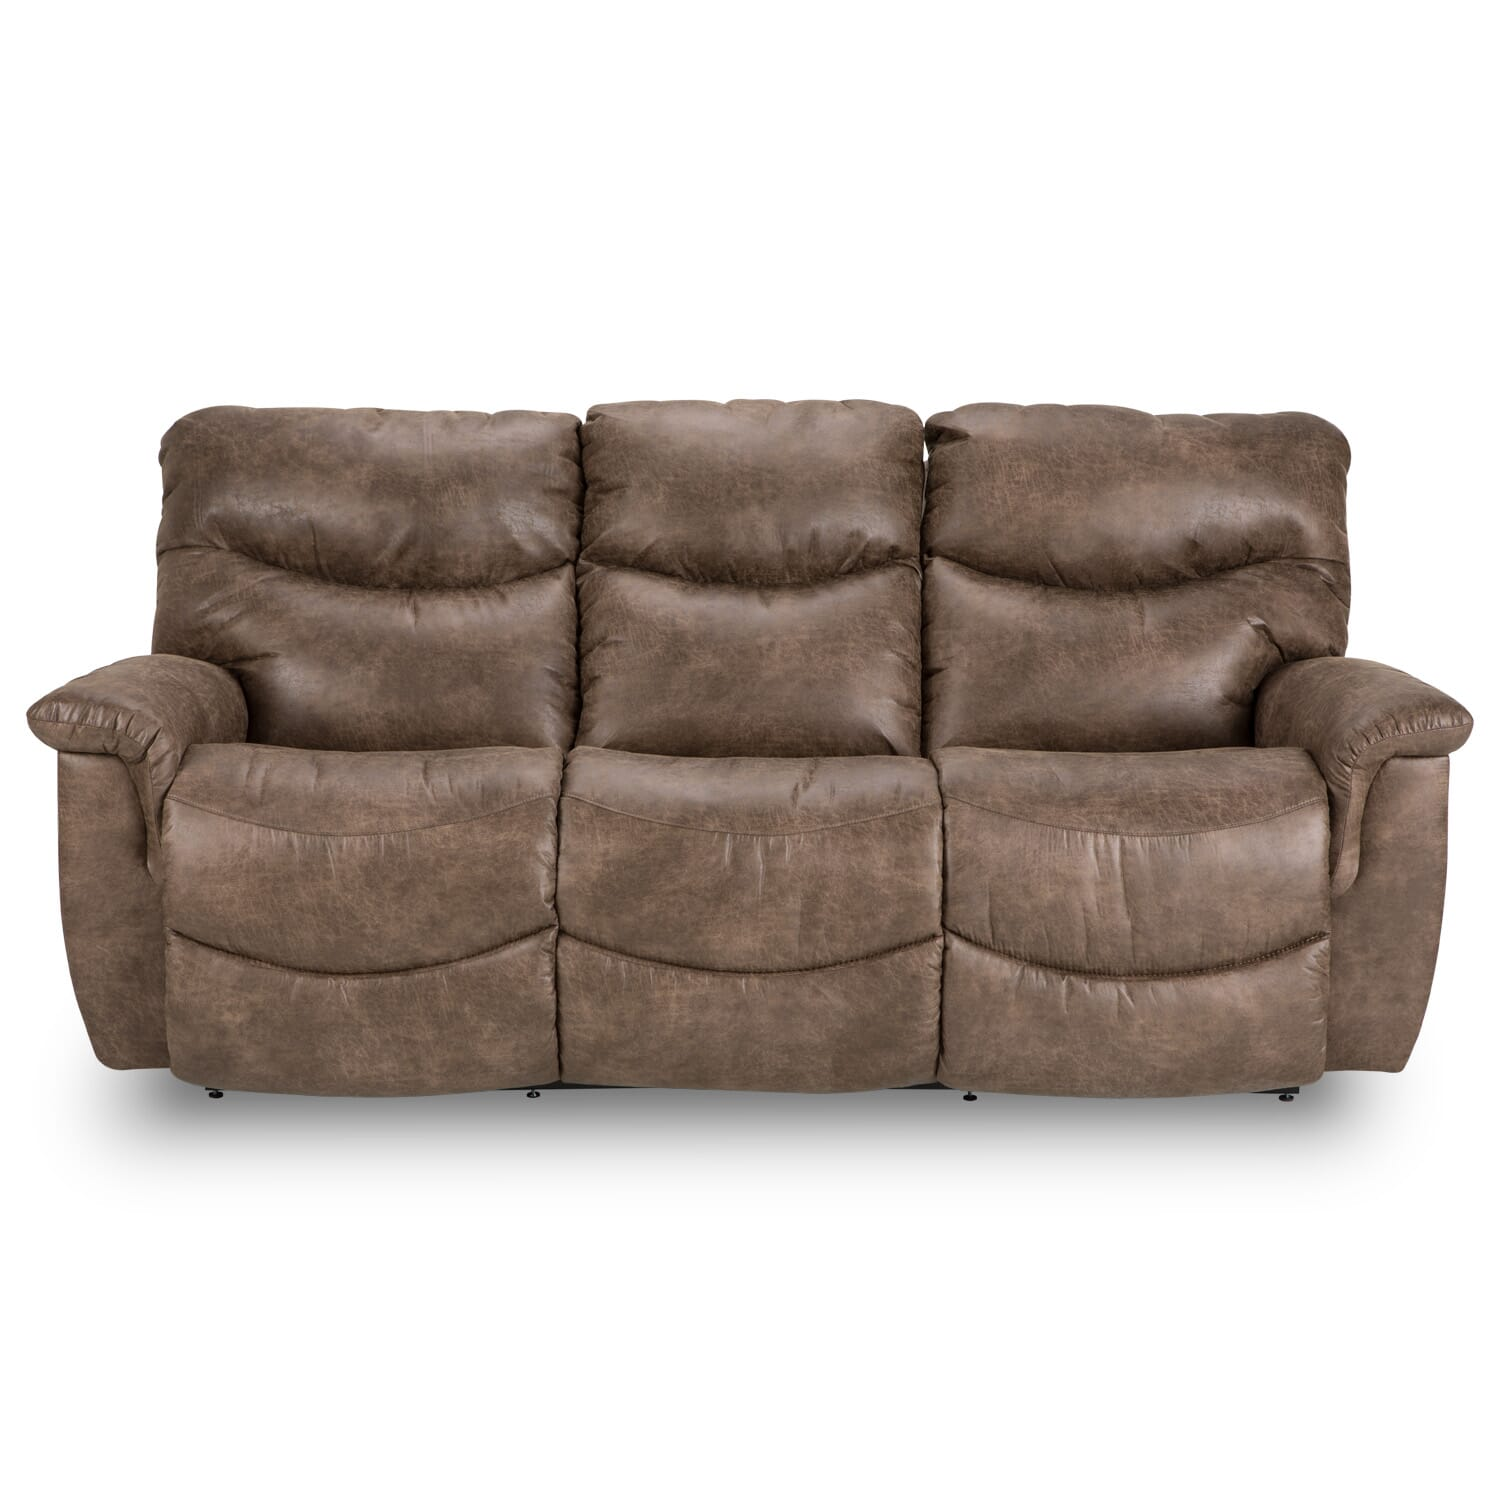 Jameson Dual Reclining Sofa Reclining Sofas Sale Wg R Furniture